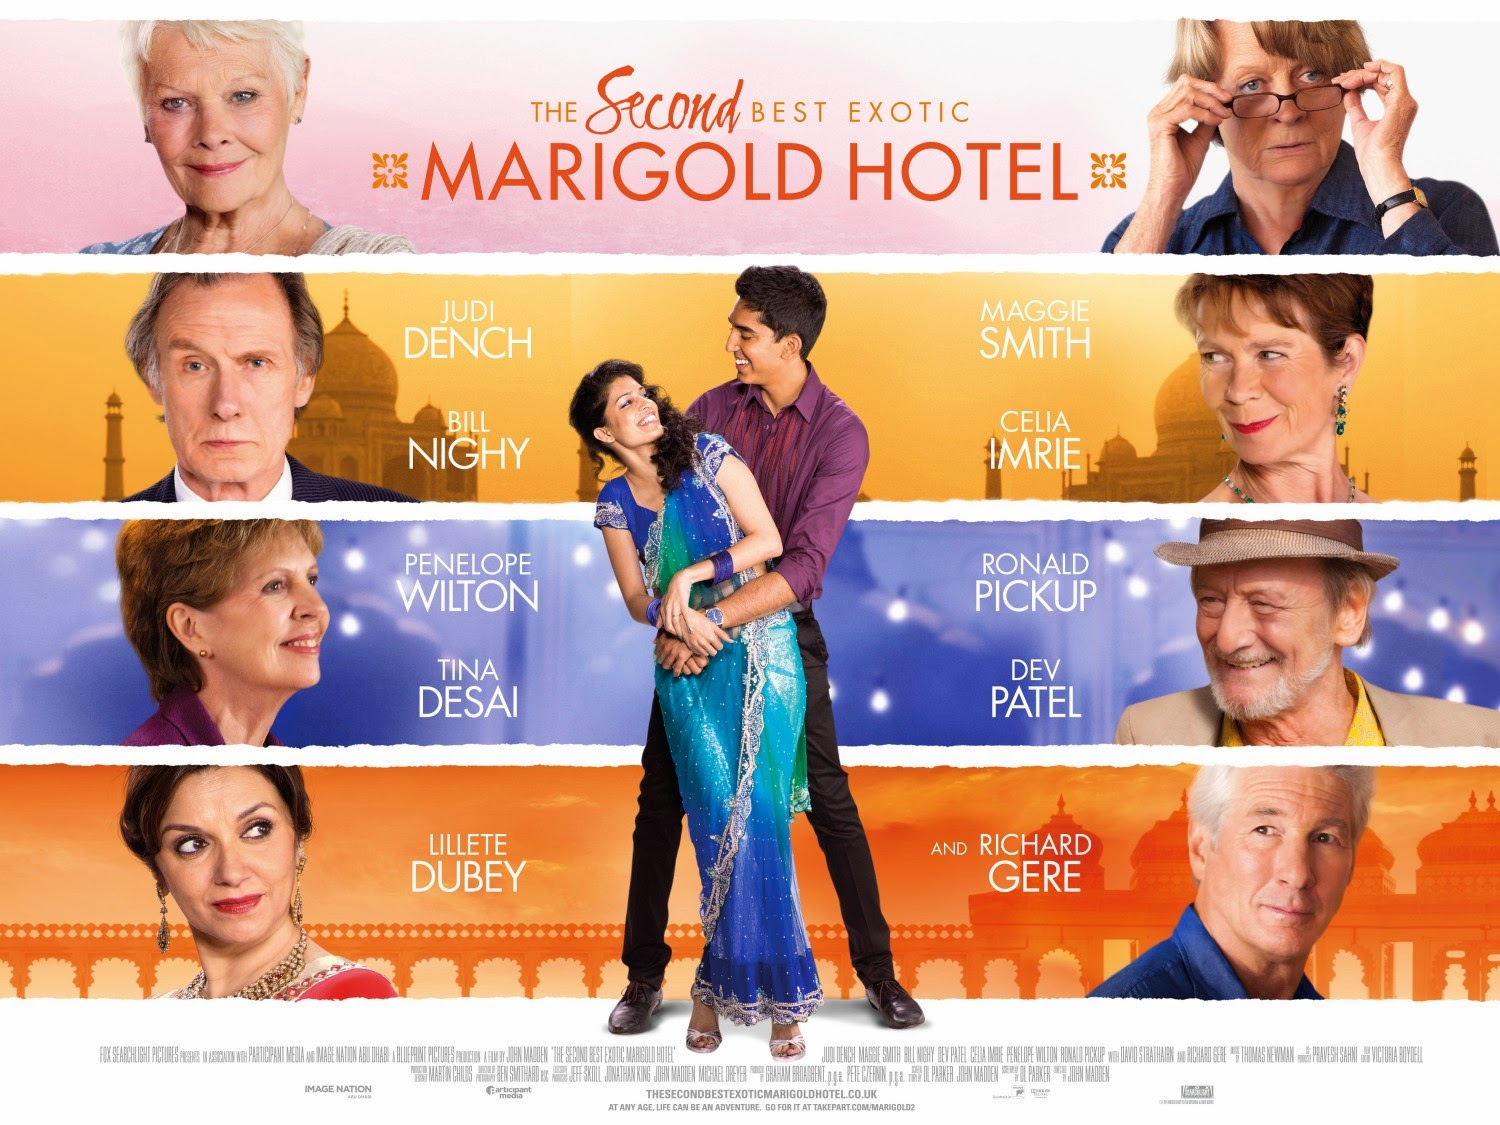 Film The Second Best Exotic Marigold Hotel (2015)